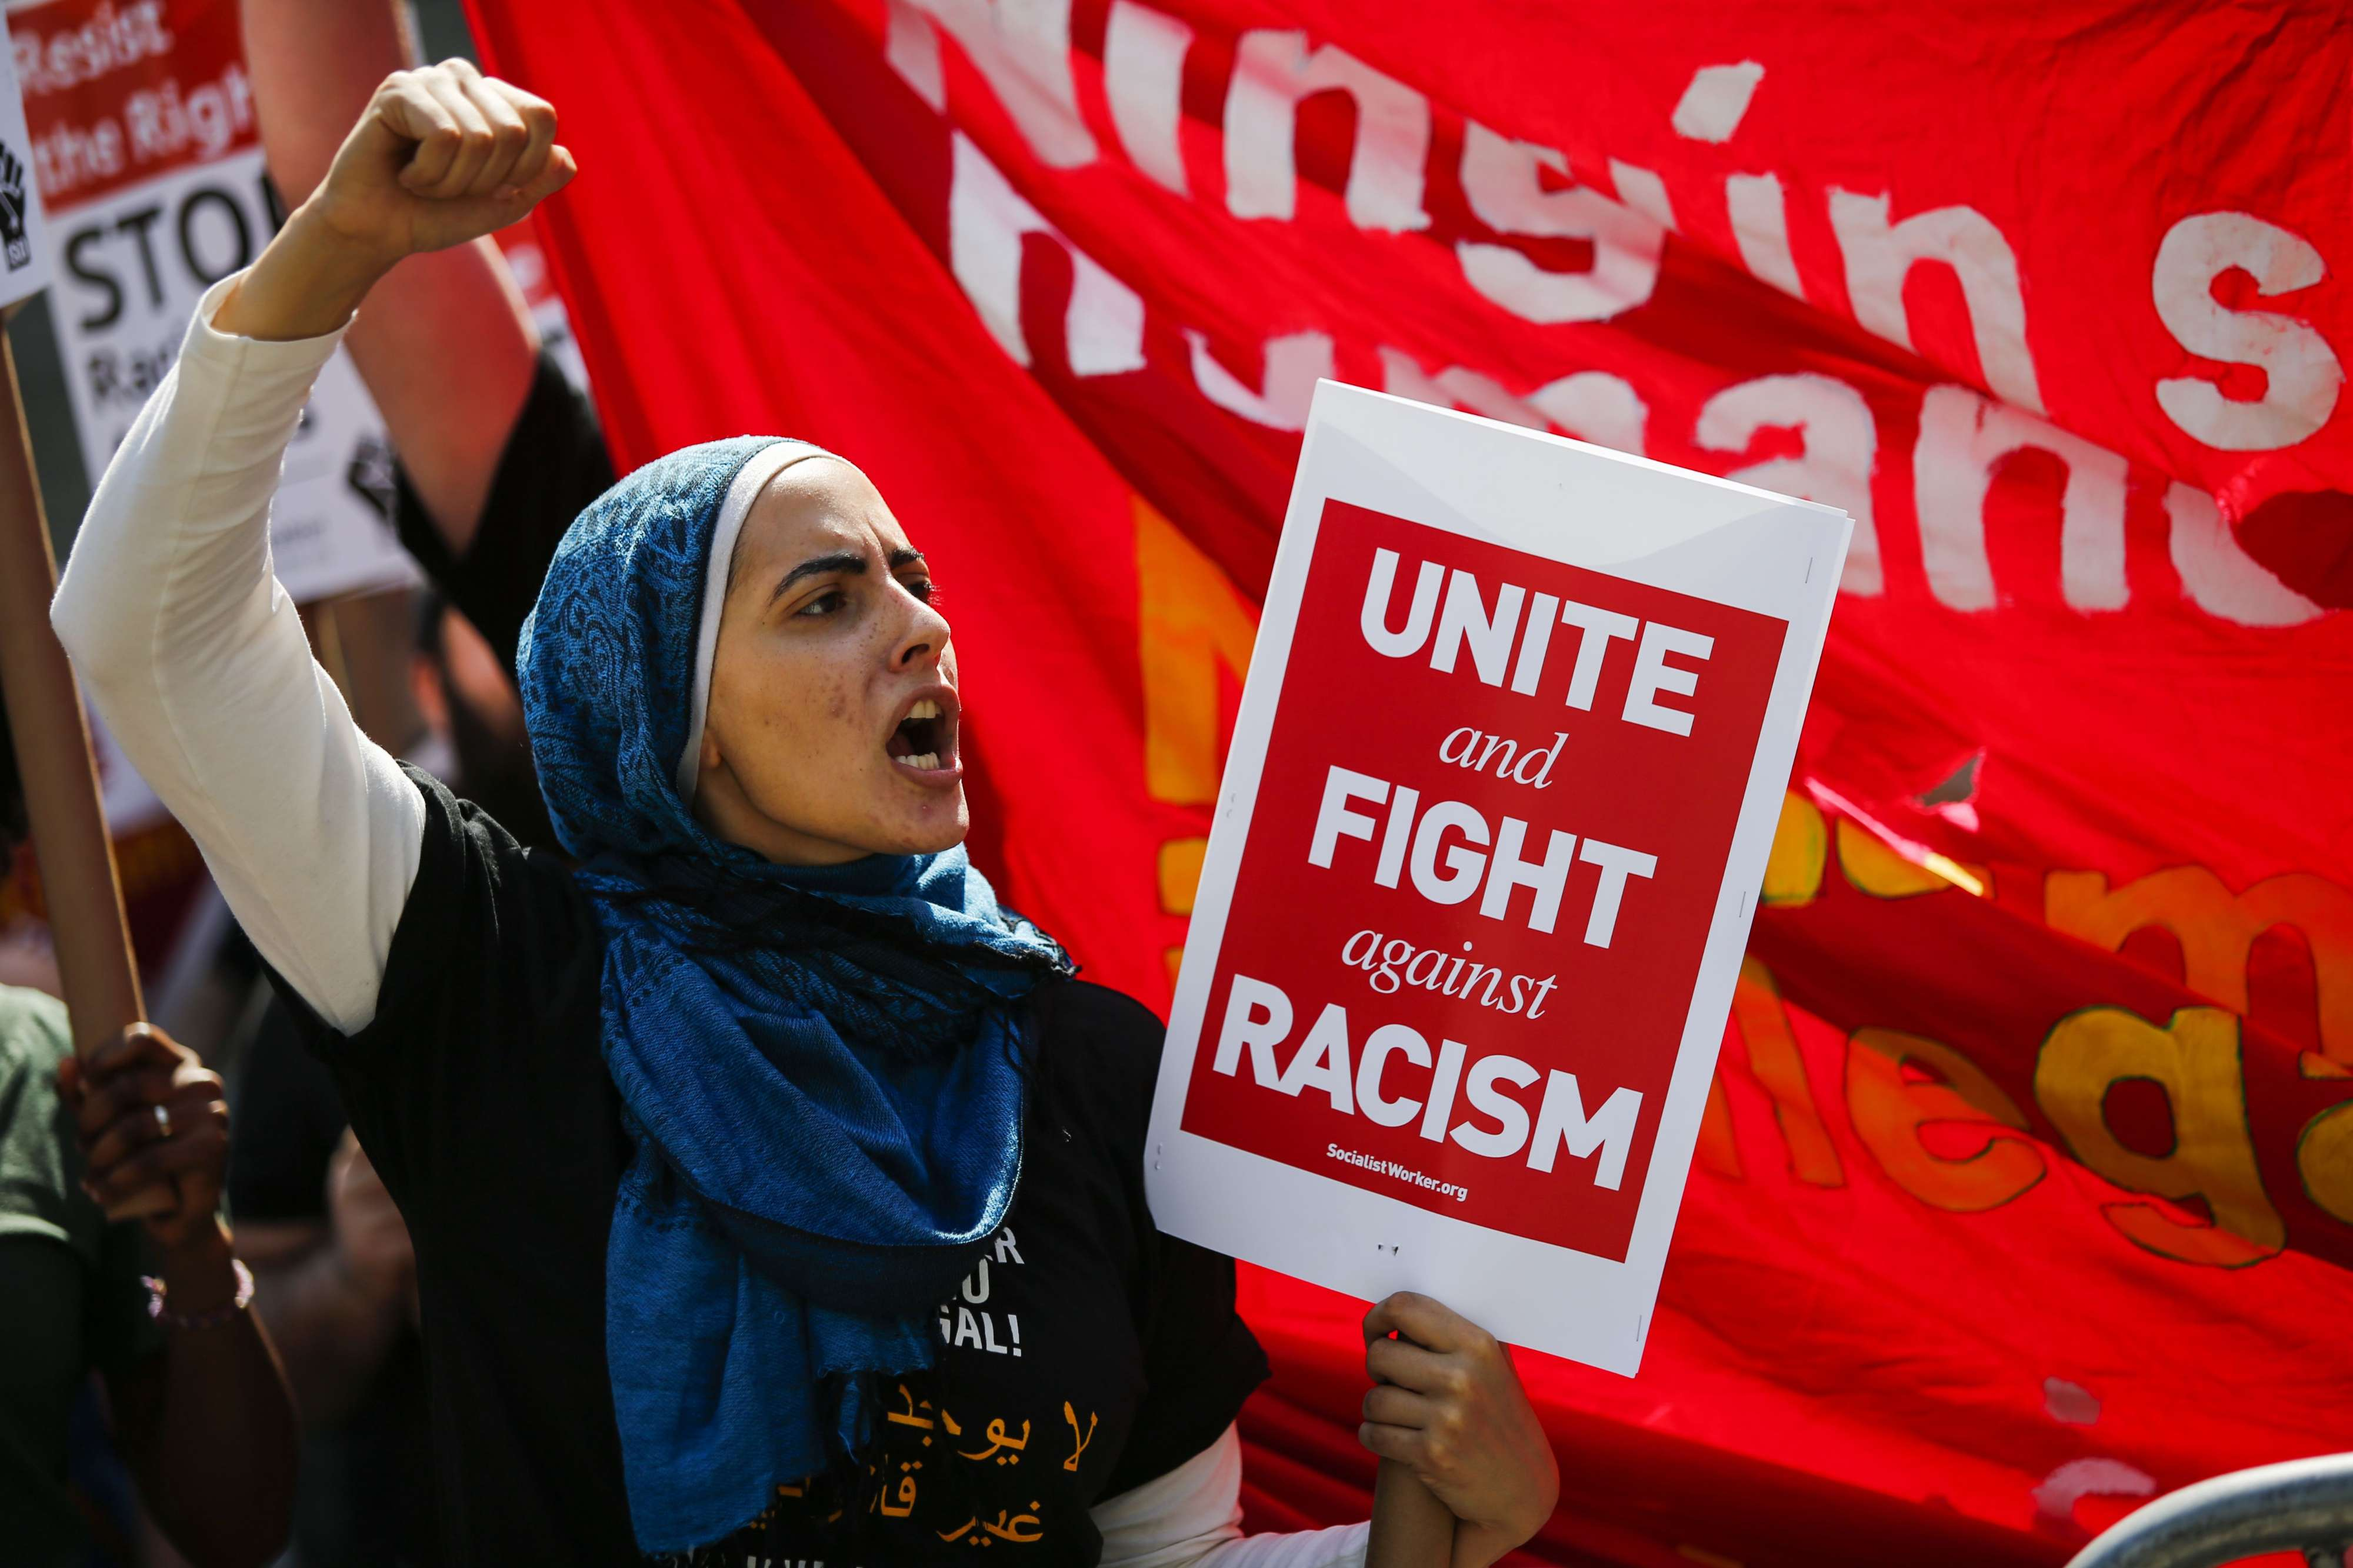 A woman shouts slogans in support of the US Muslim community at Foley Square in New York City, last June.   	     (AFP)